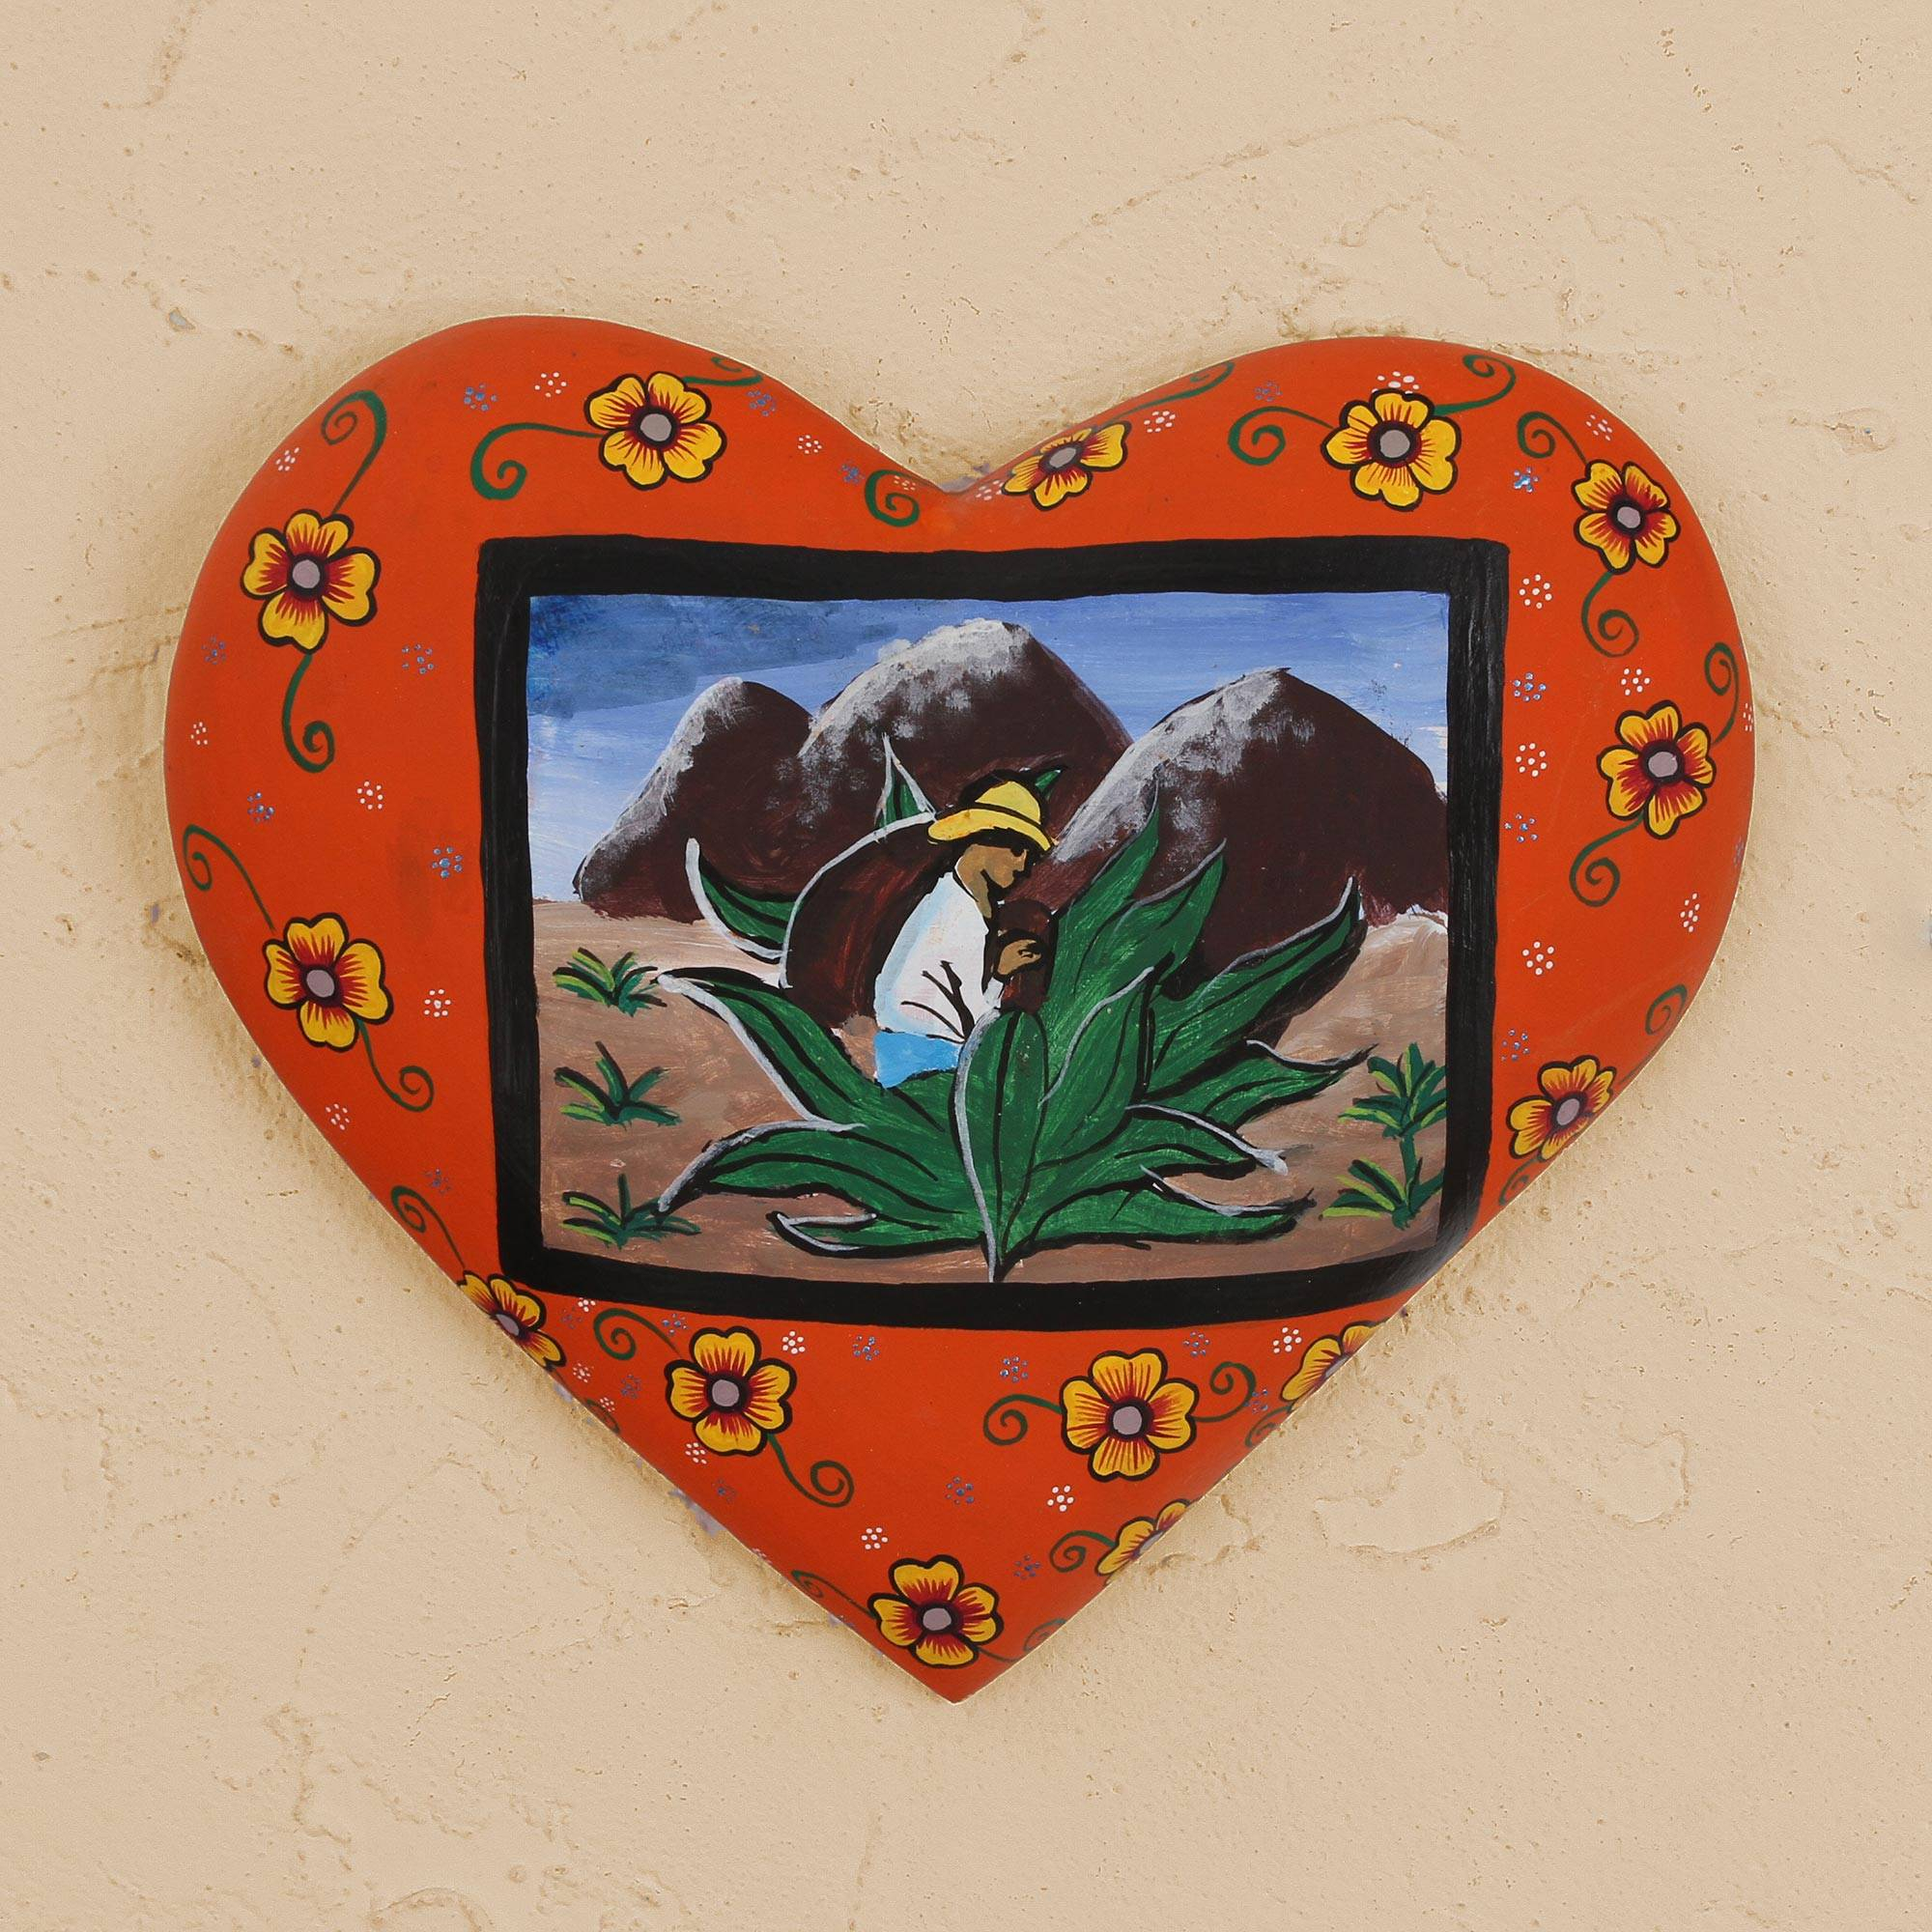 Hand Painted Heart Shaped Wood Wall Art From Mexico, 'agave Harvest' Intended For 2 Piece Heart Shaped Fan Wall Decor Sets (View 21 of 30)